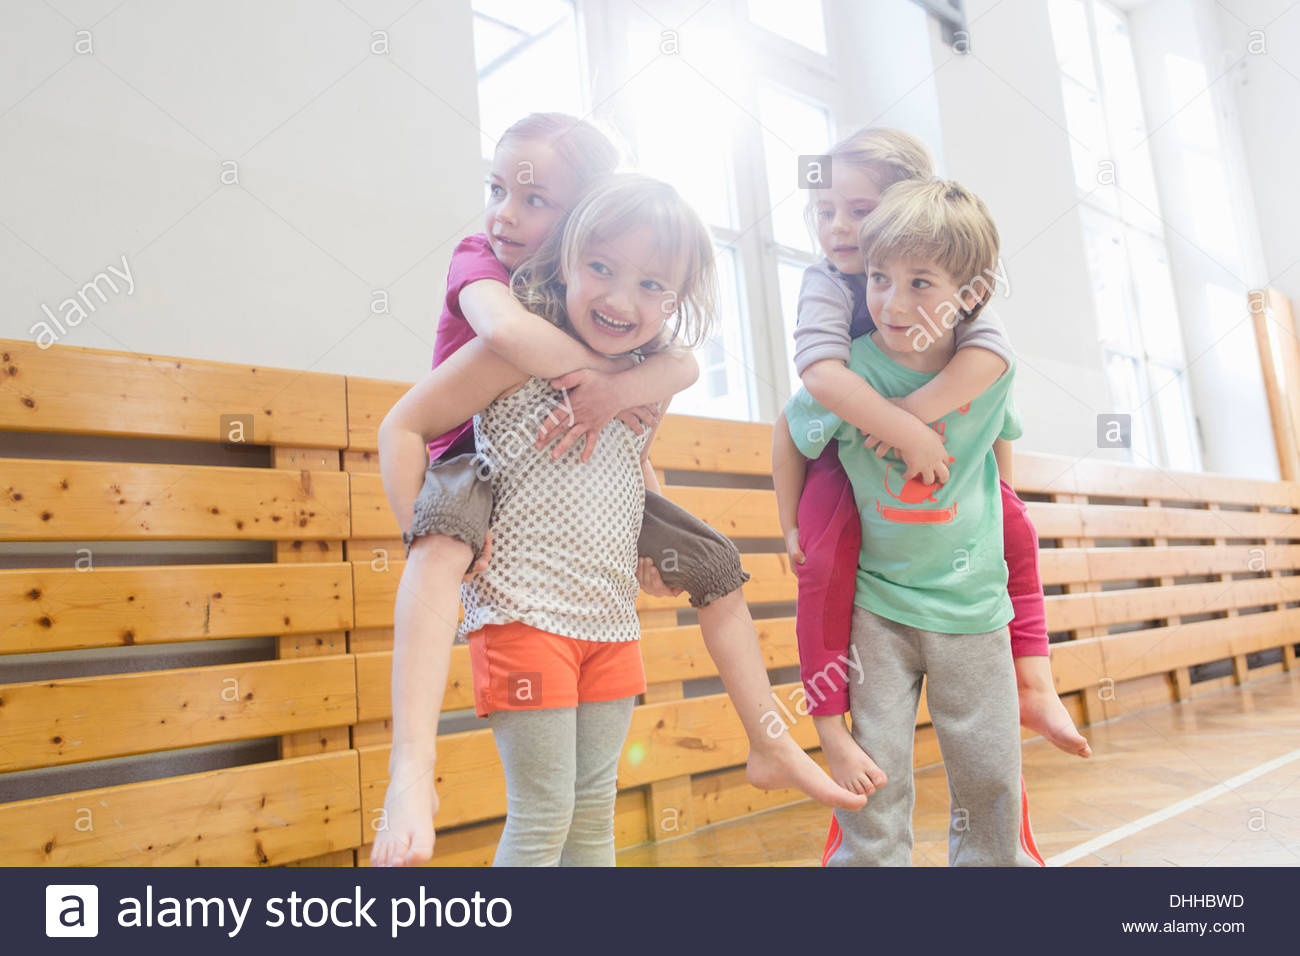 Les enfants d'amis donnant un piggy back Photo Stock